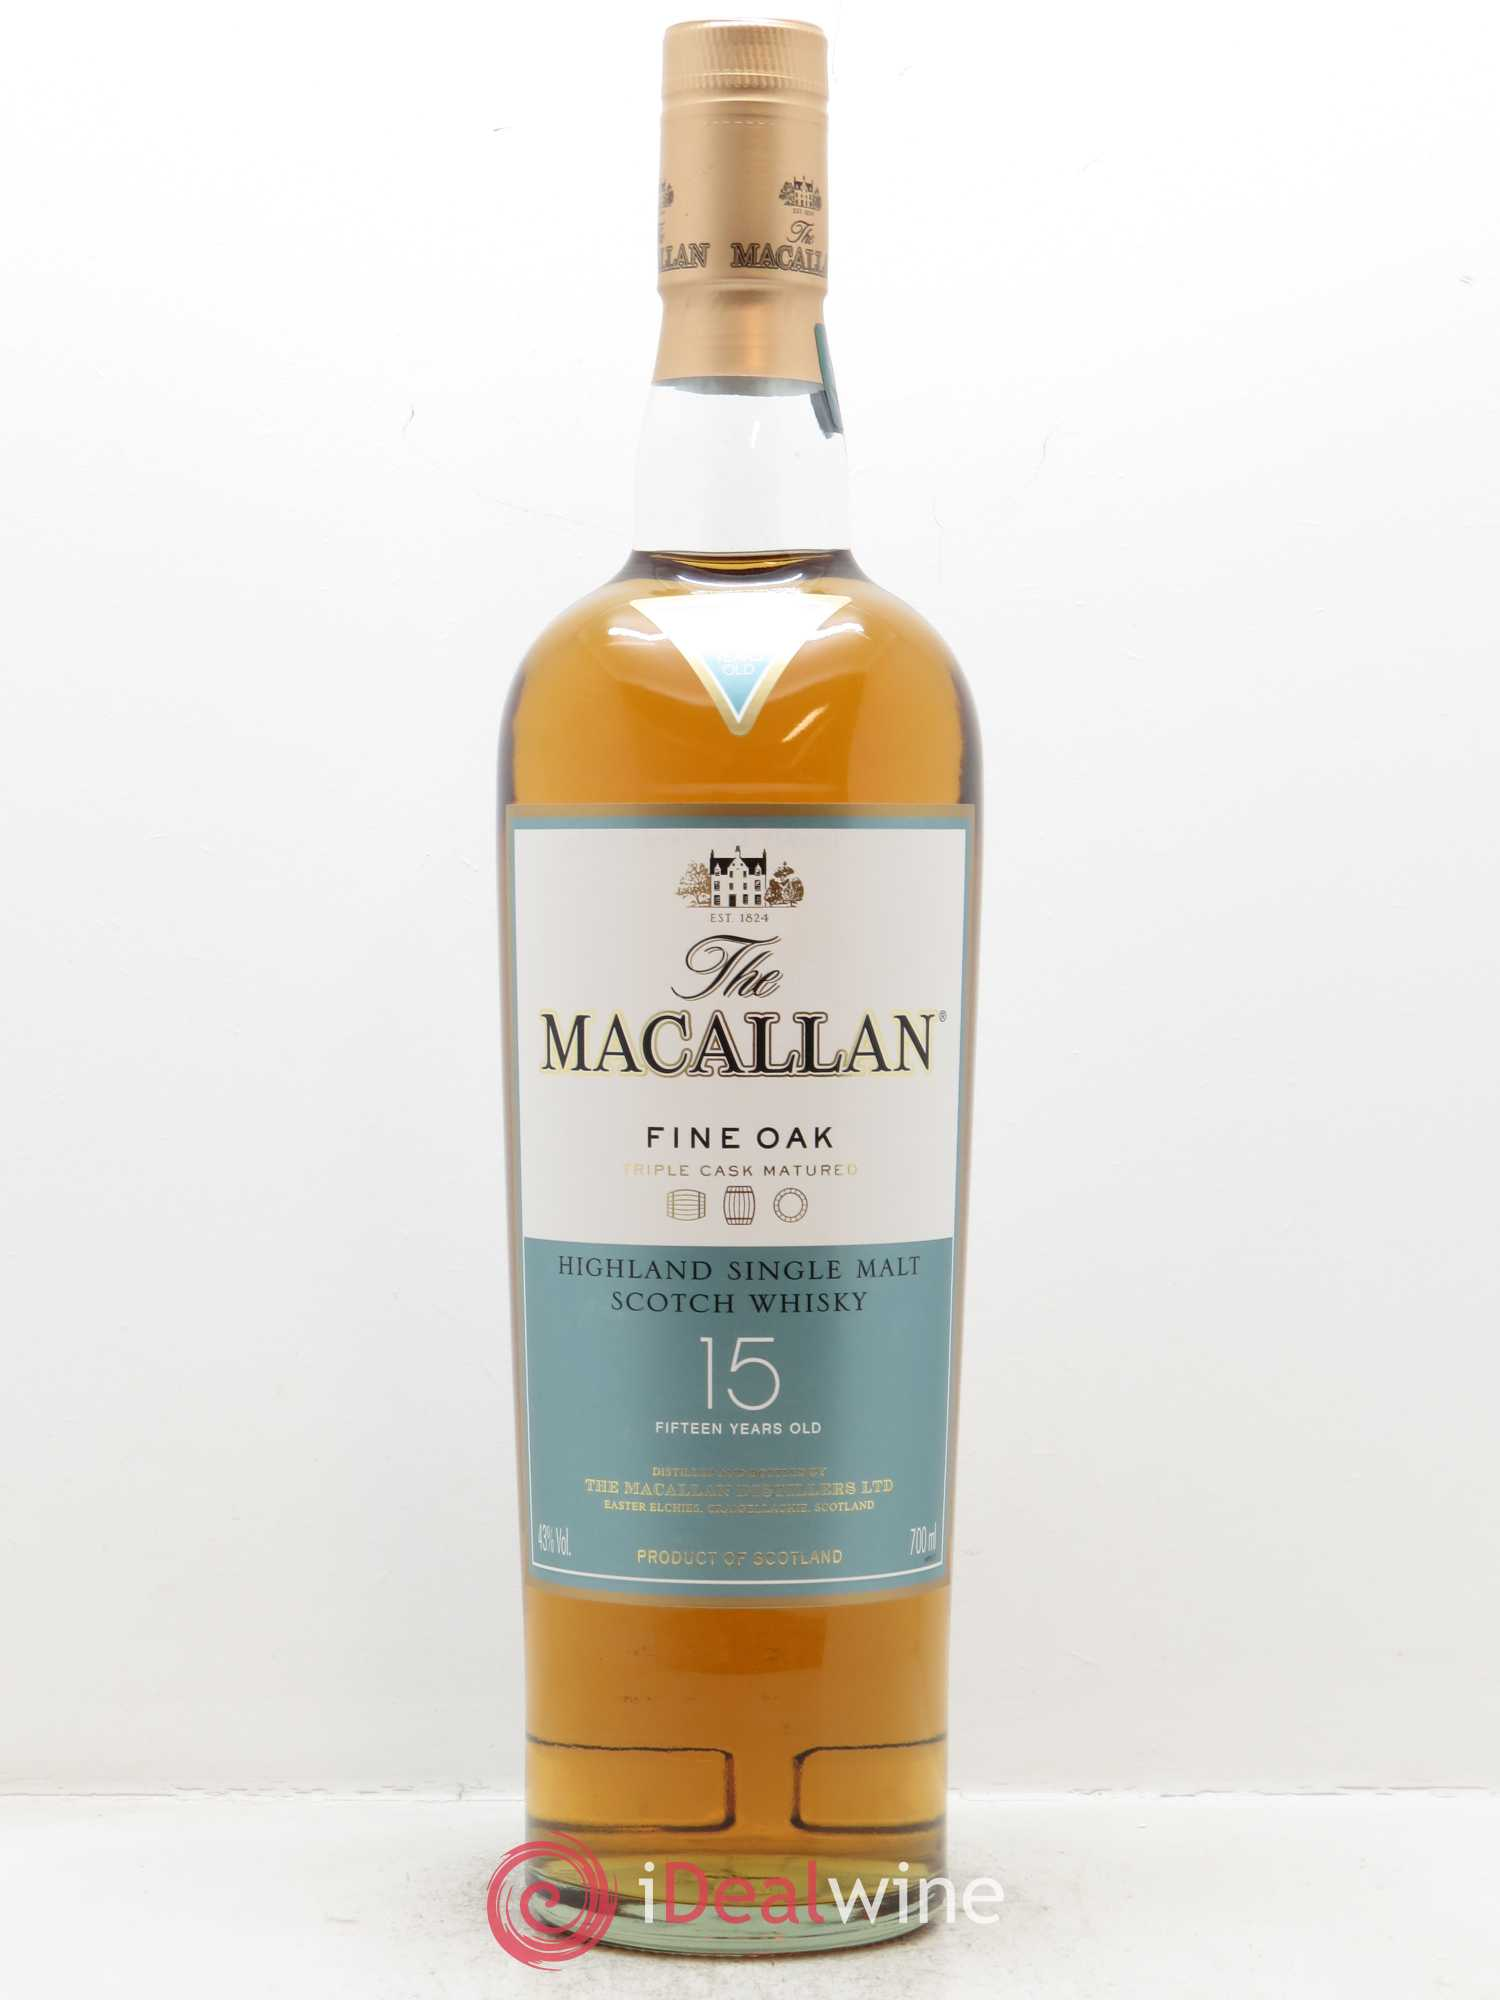 Whisky Fine Oak 15 years Old The Macallan (70cl)  - Lot de 1 Bouteille